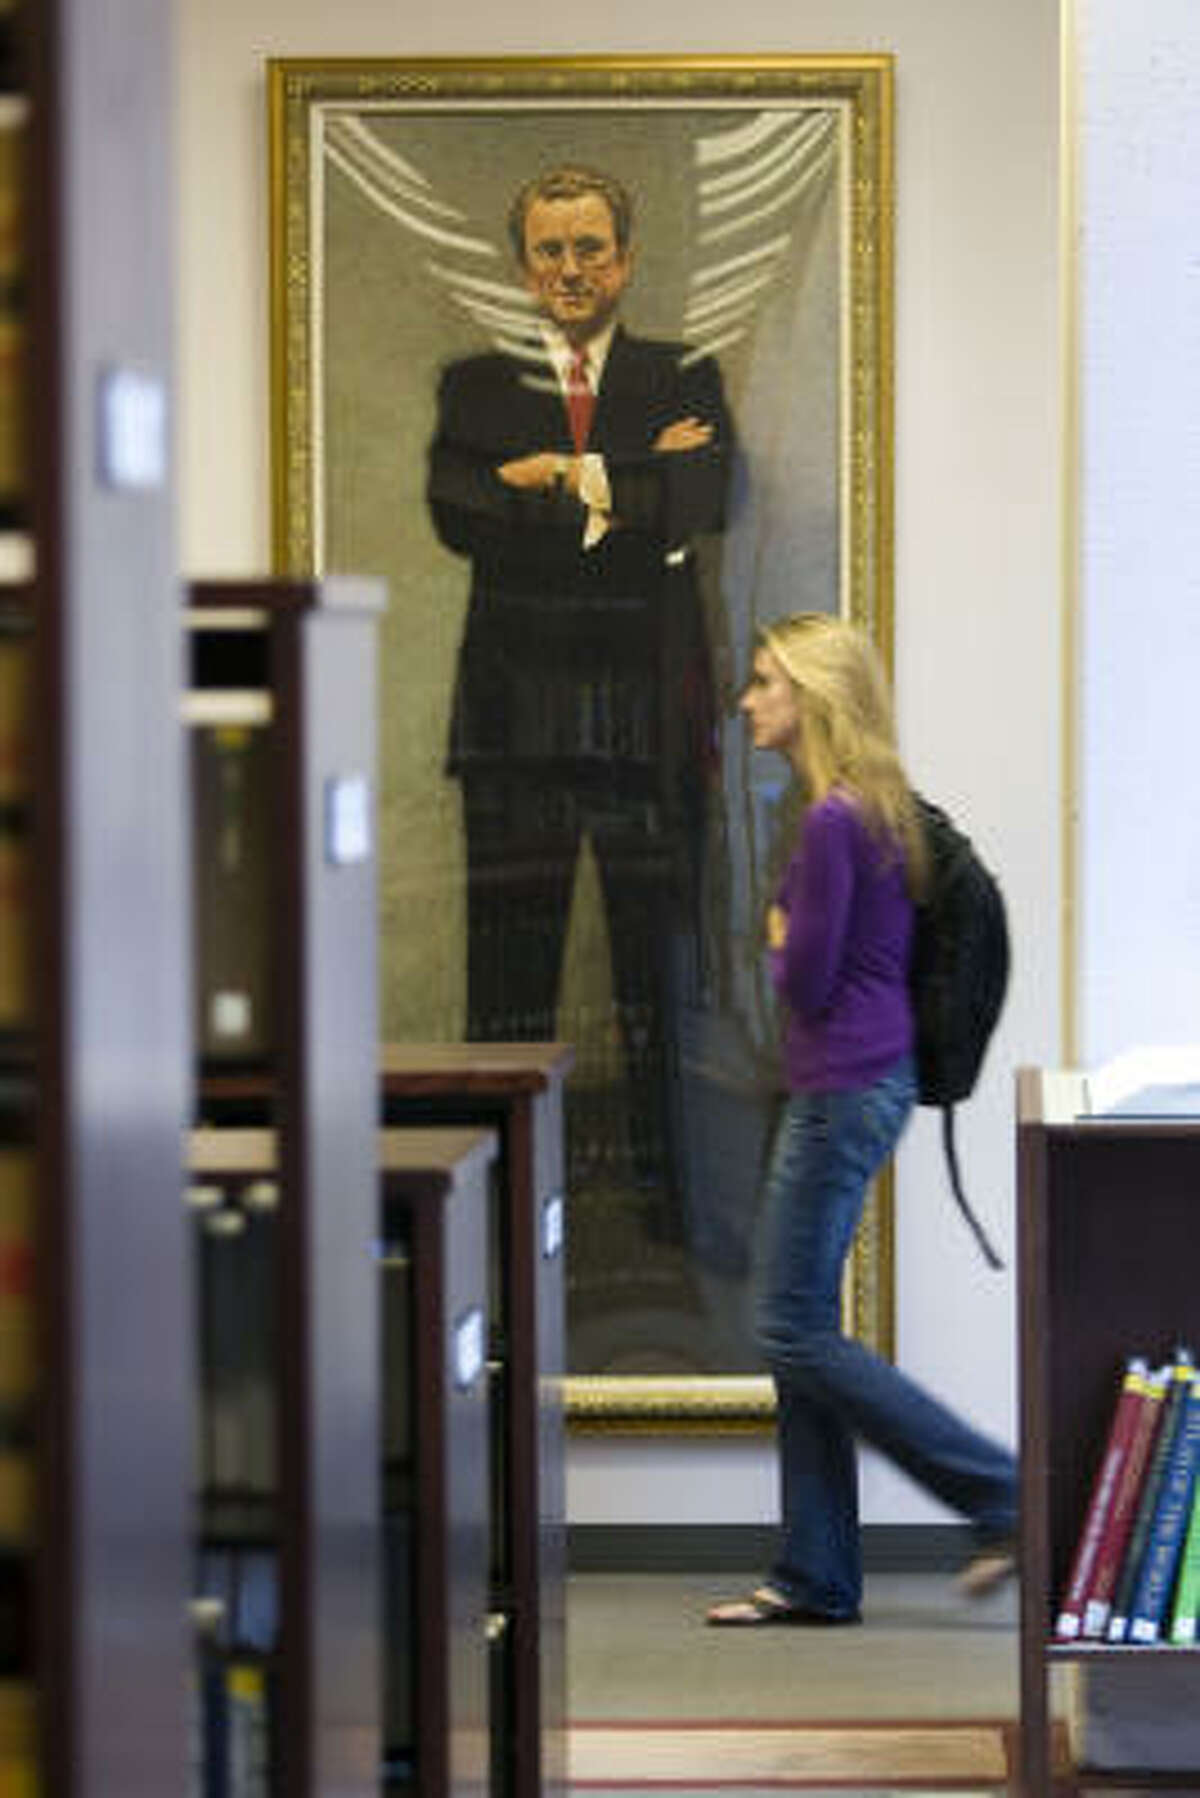 A student walks past a painting of prominent Houston lawyer John O'Quinn in the law library at UH.